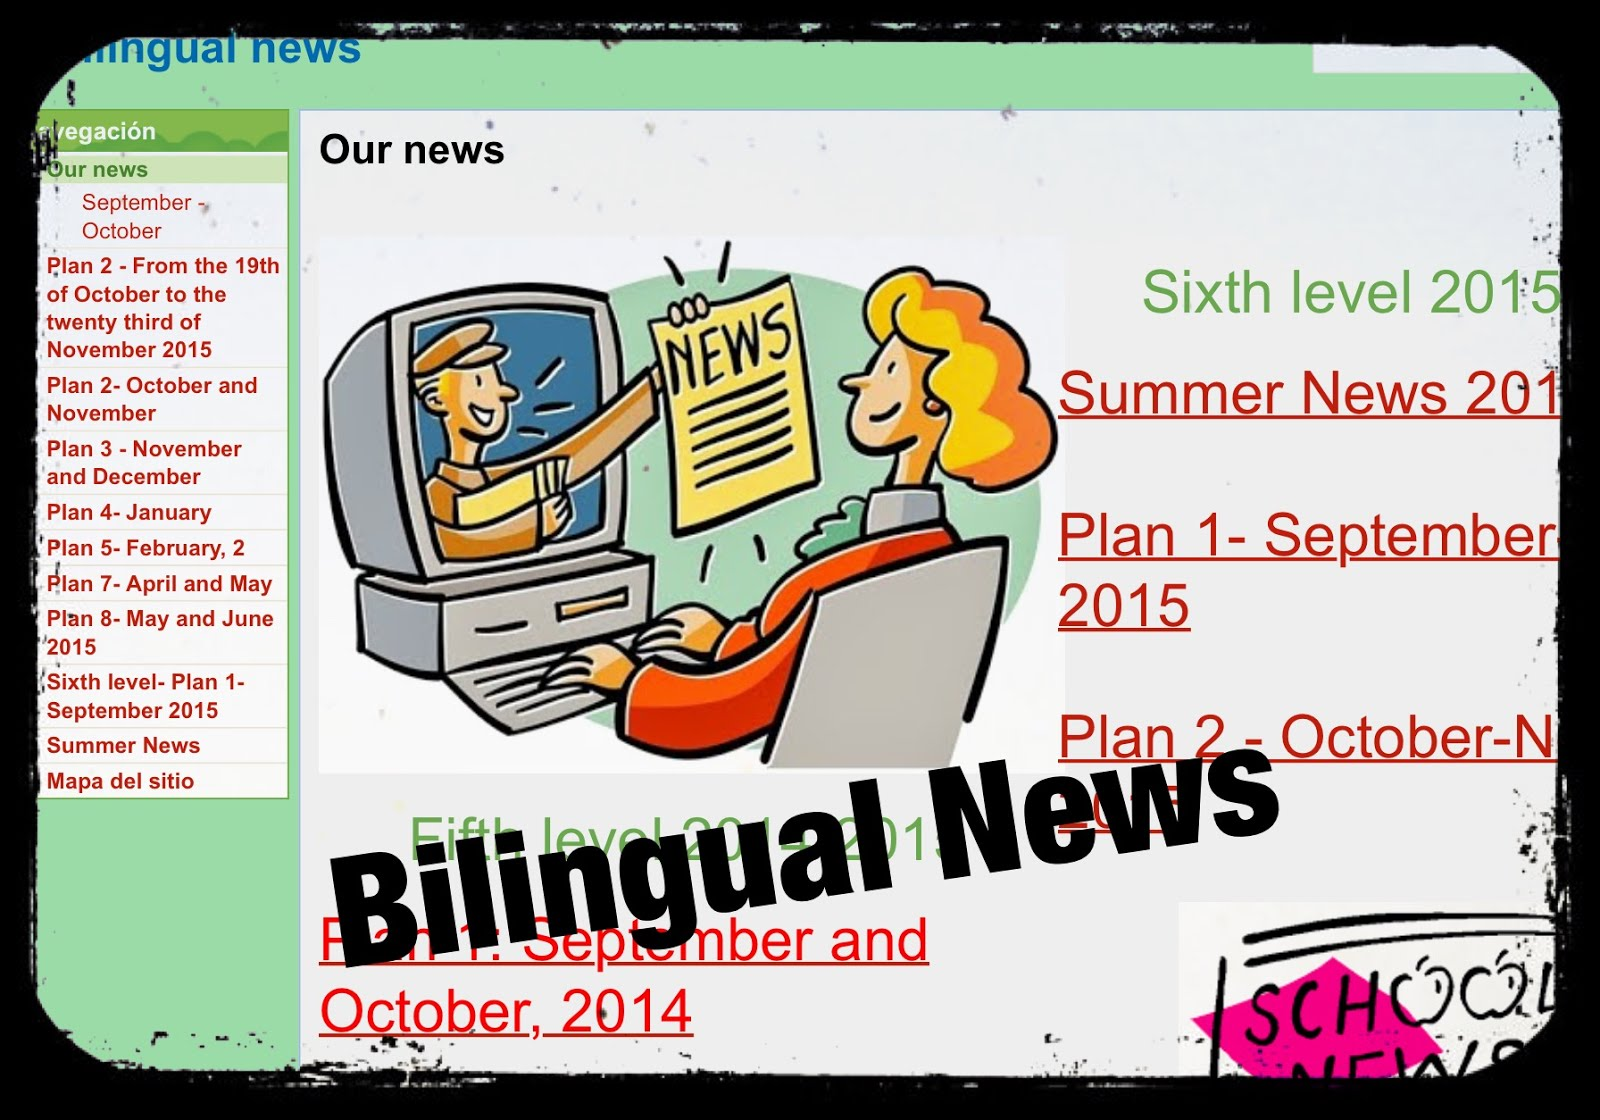 Bilingual News